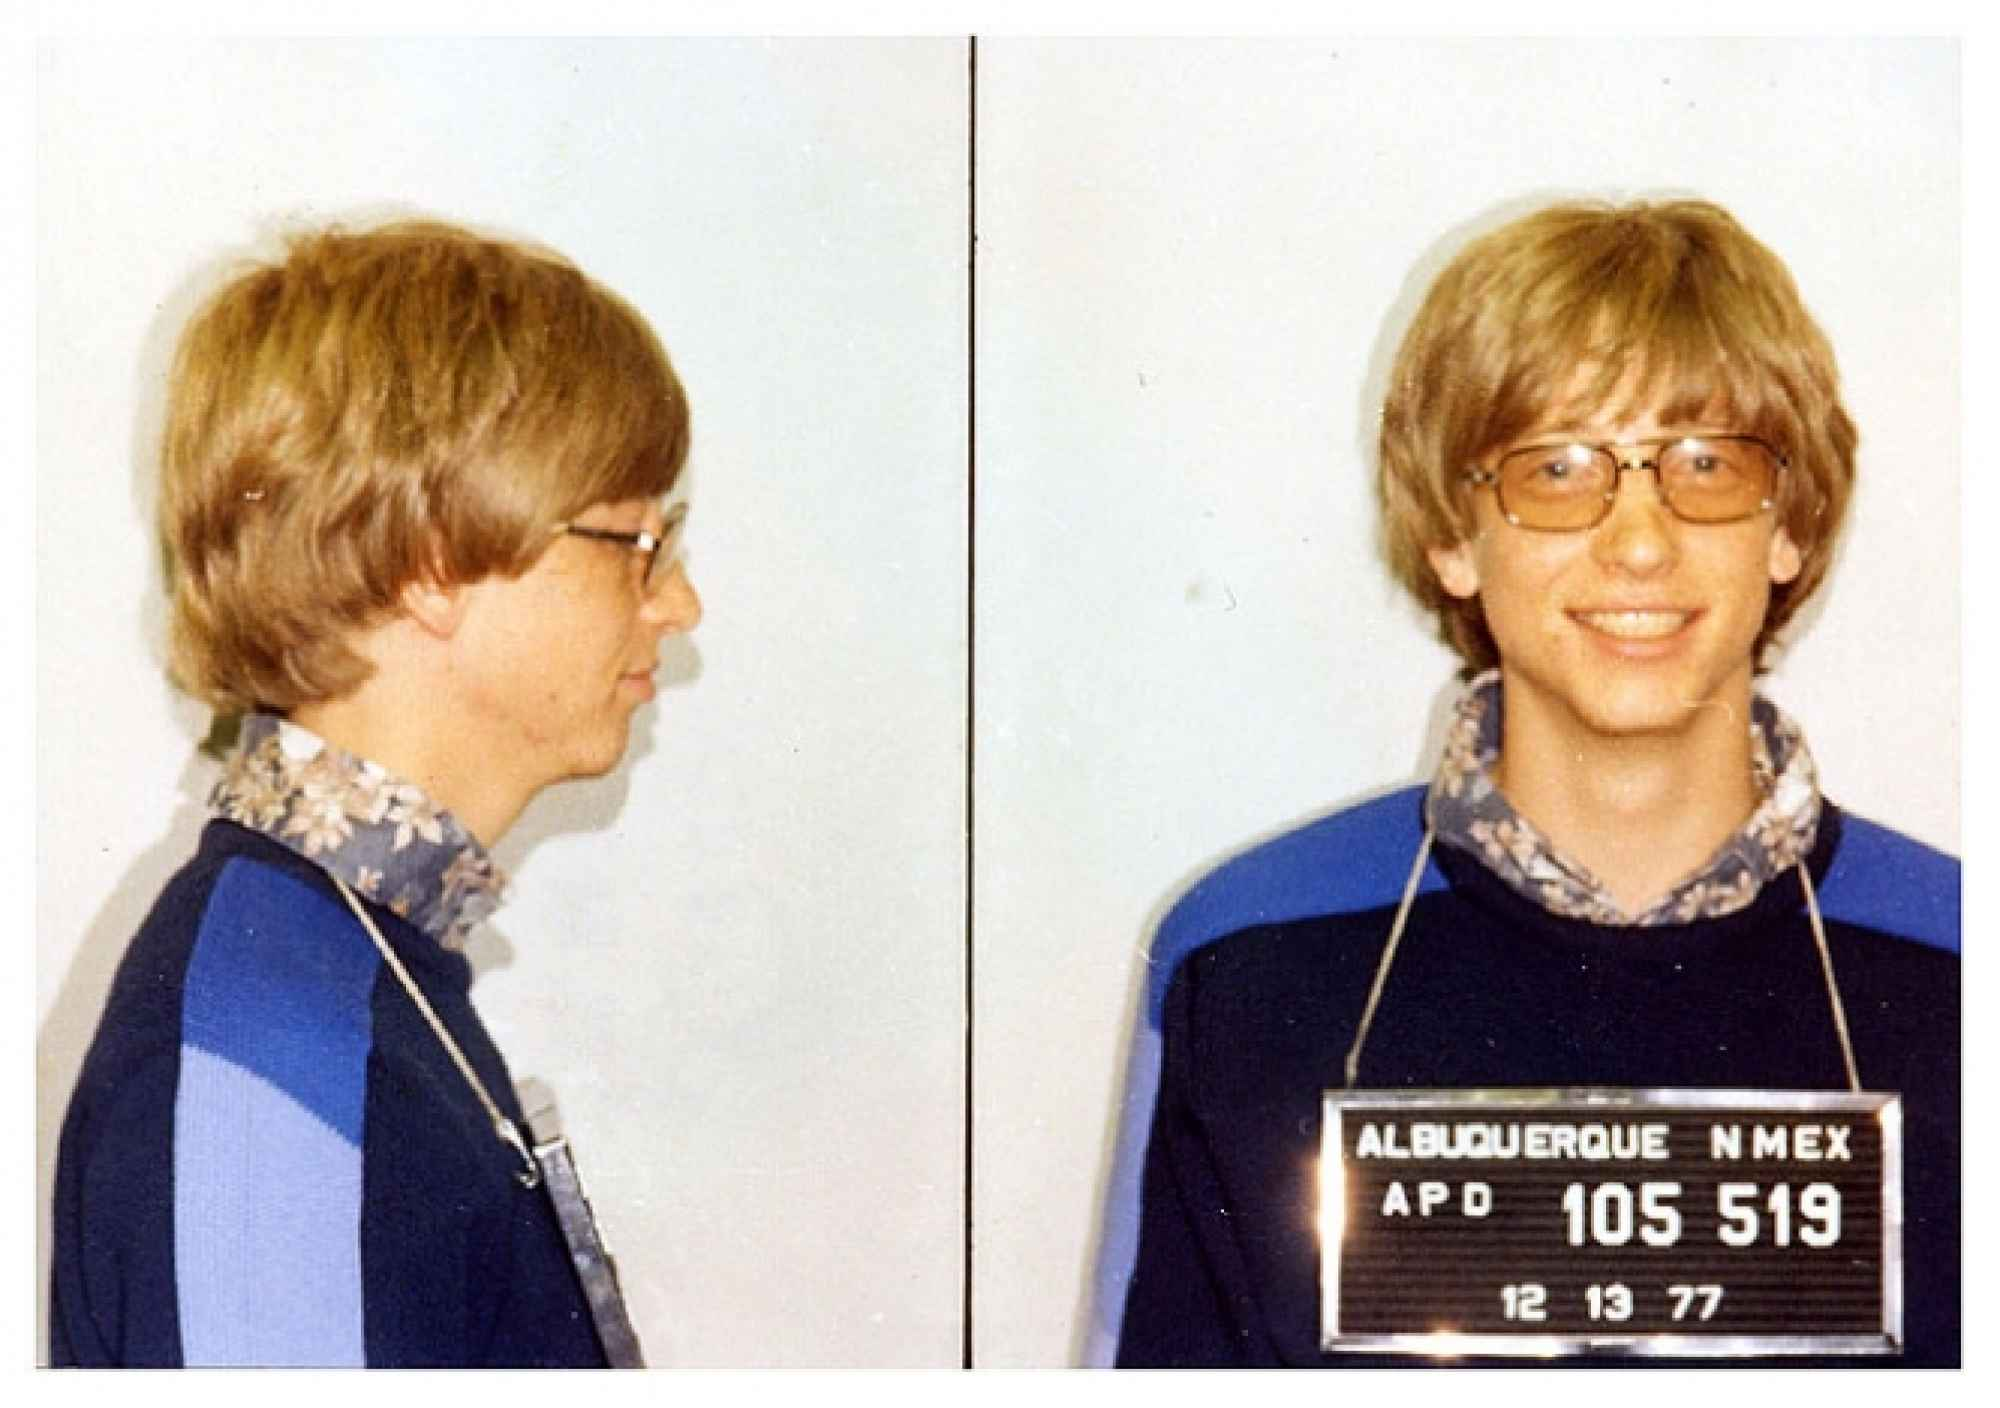 bill-gates-arrested-for-driving-without-a-license-1977